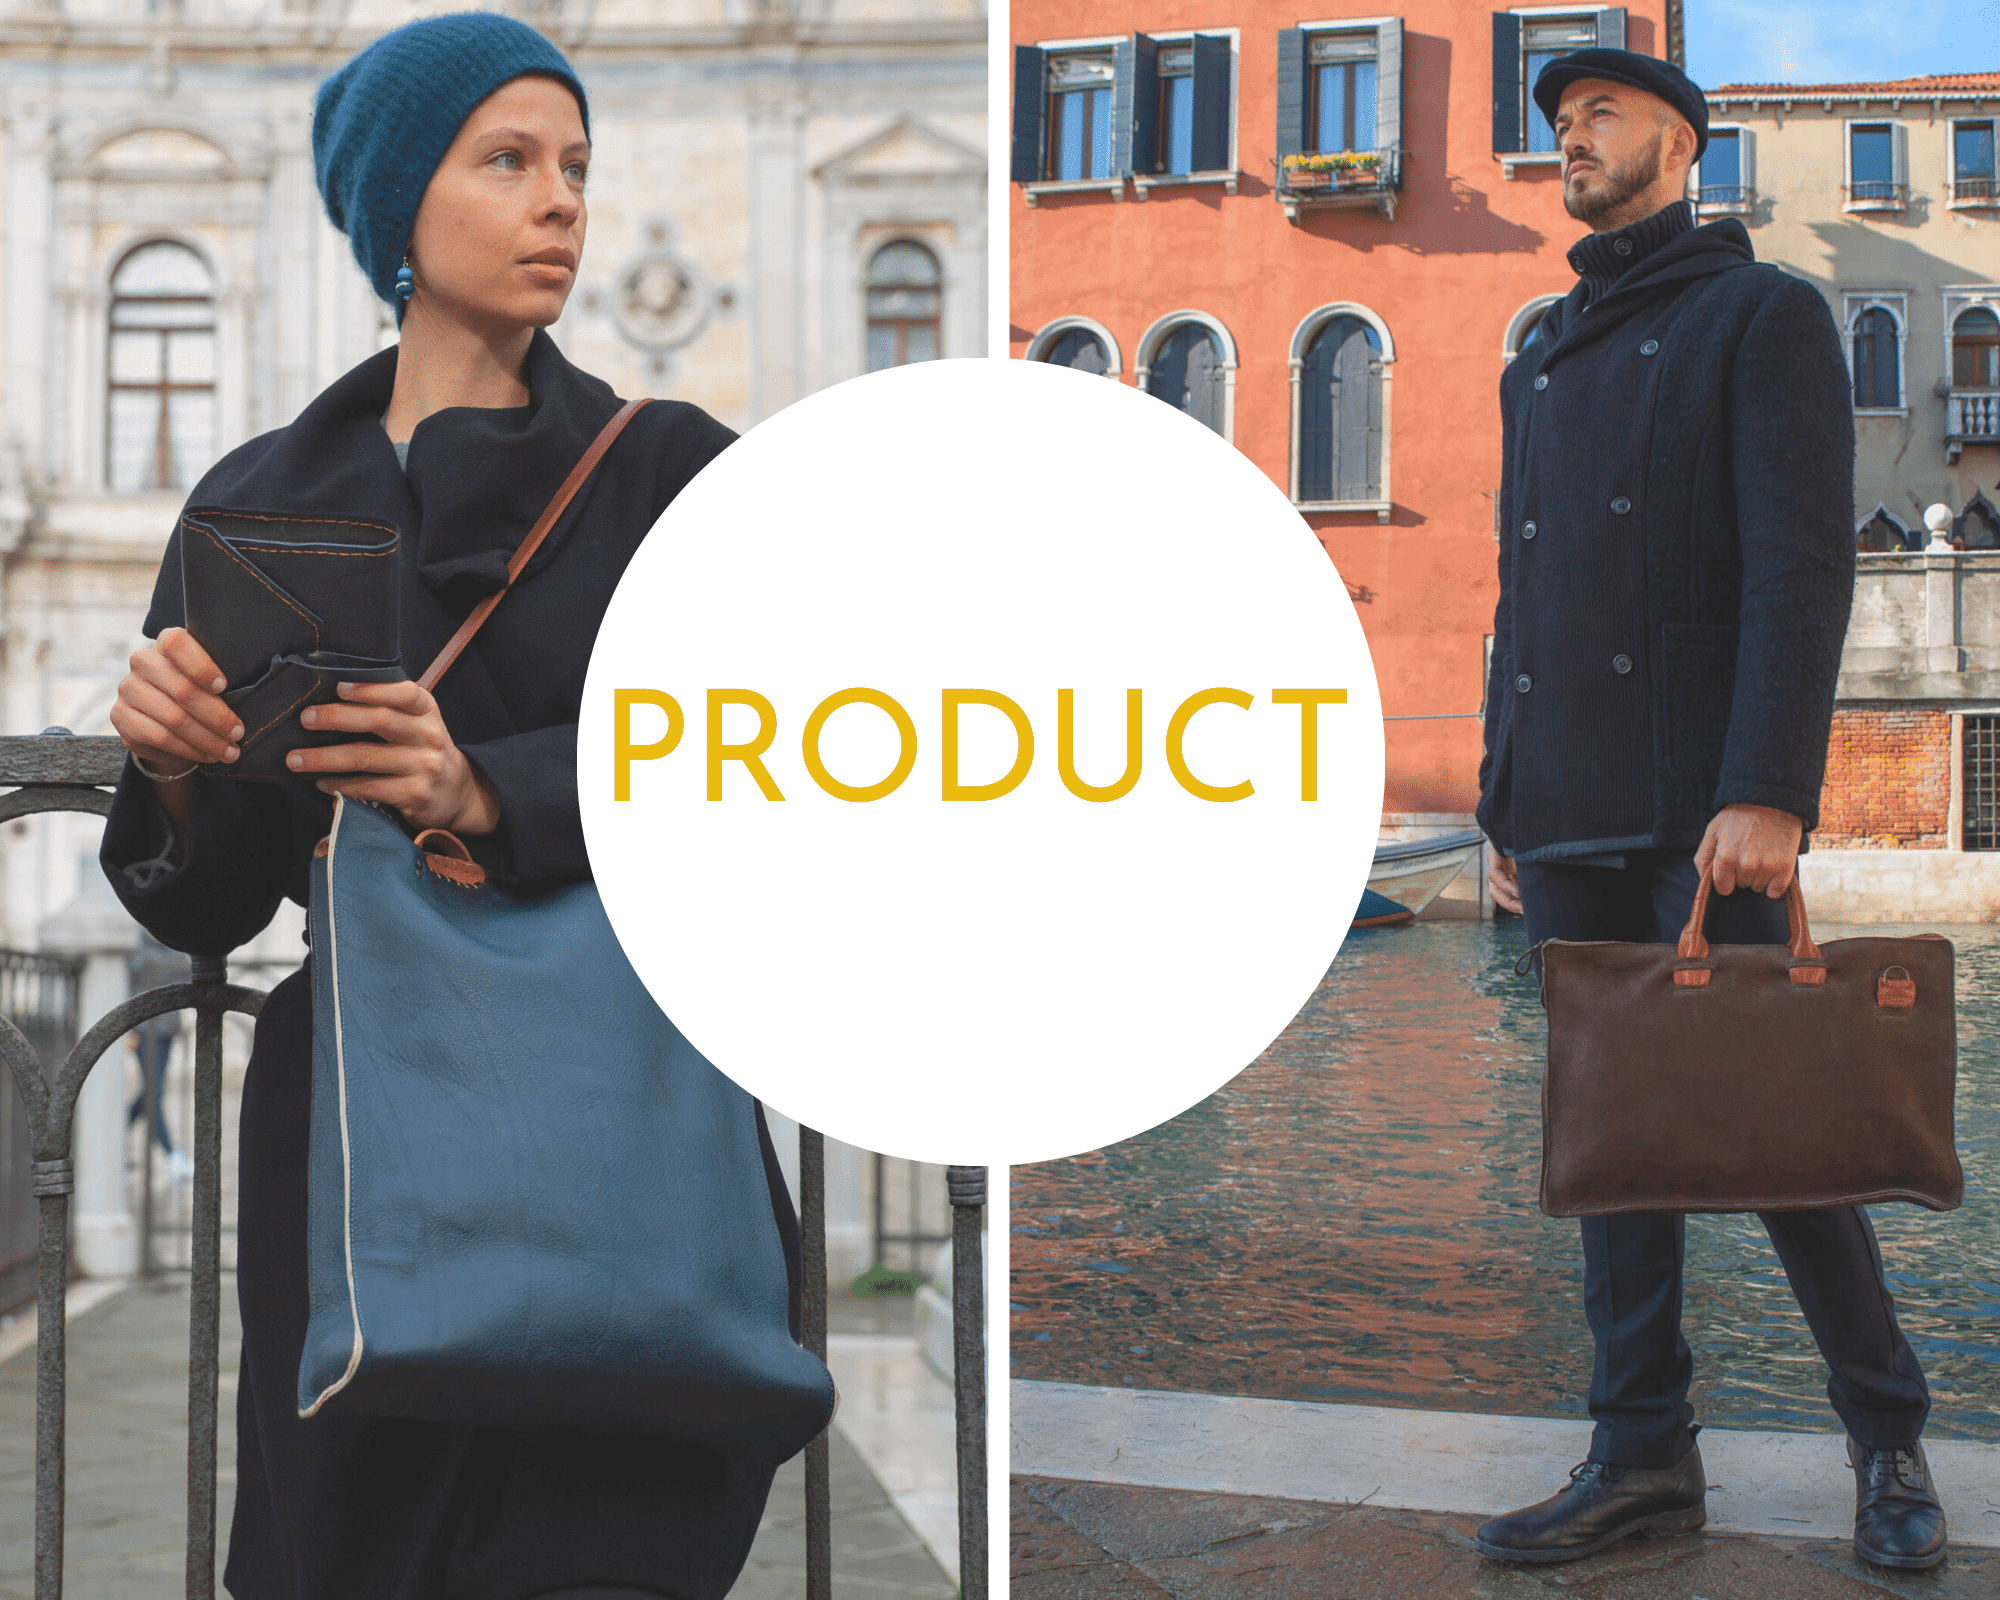 Impact & Sustainability - Shop by Venezia Autentica - Shop by Venezia Autentica - Everything you buy on Venezia Autentica contributes to help local artisans stay in business and keep on living in their city. This prevents their displacement